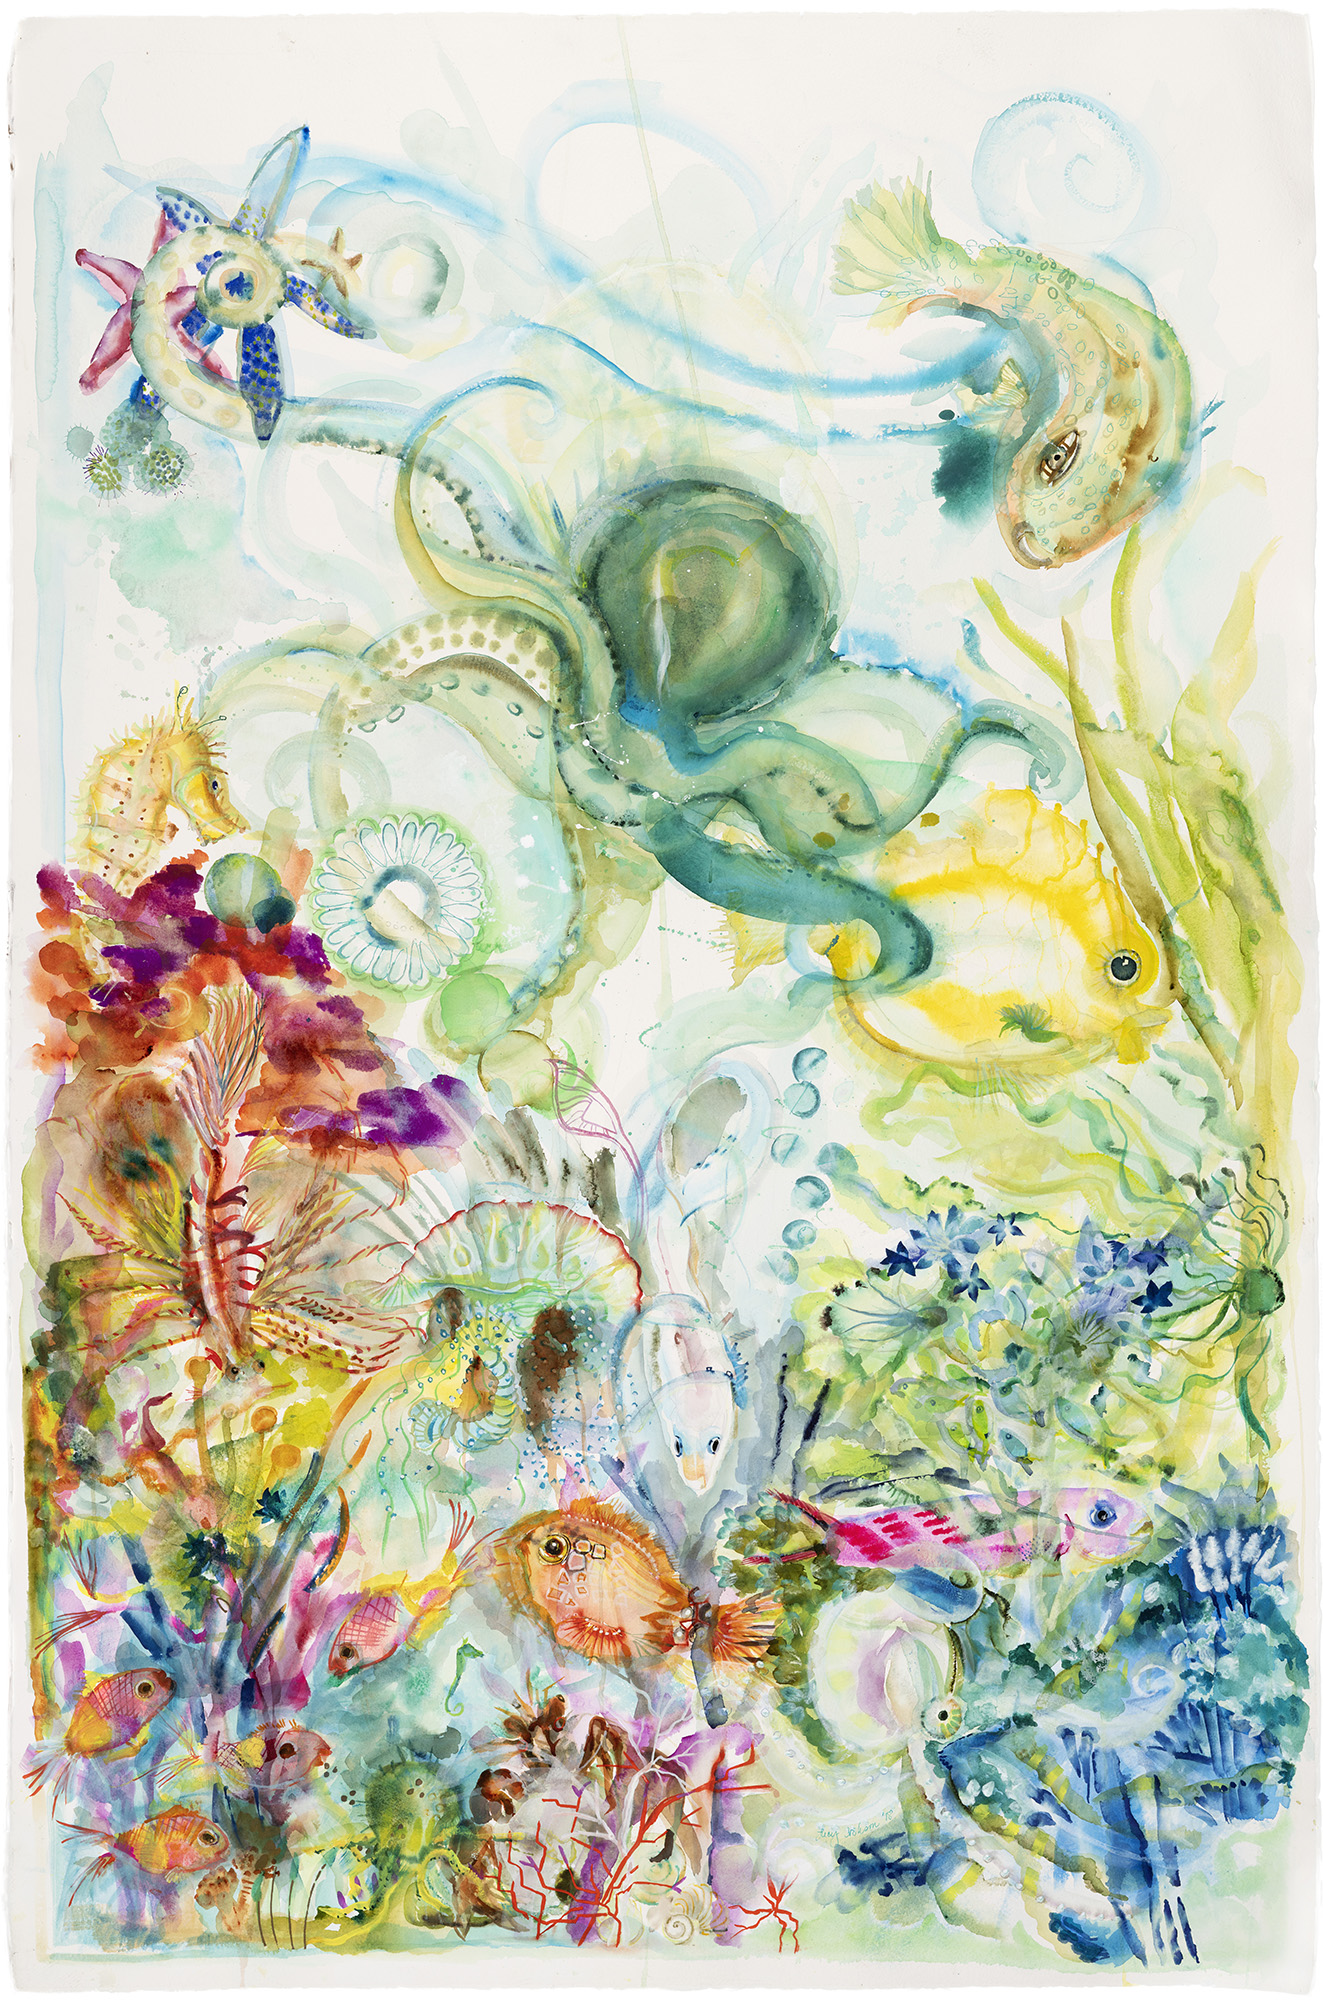 Under Sea, 2018, Watercolor on paper, 60 x 40 in.